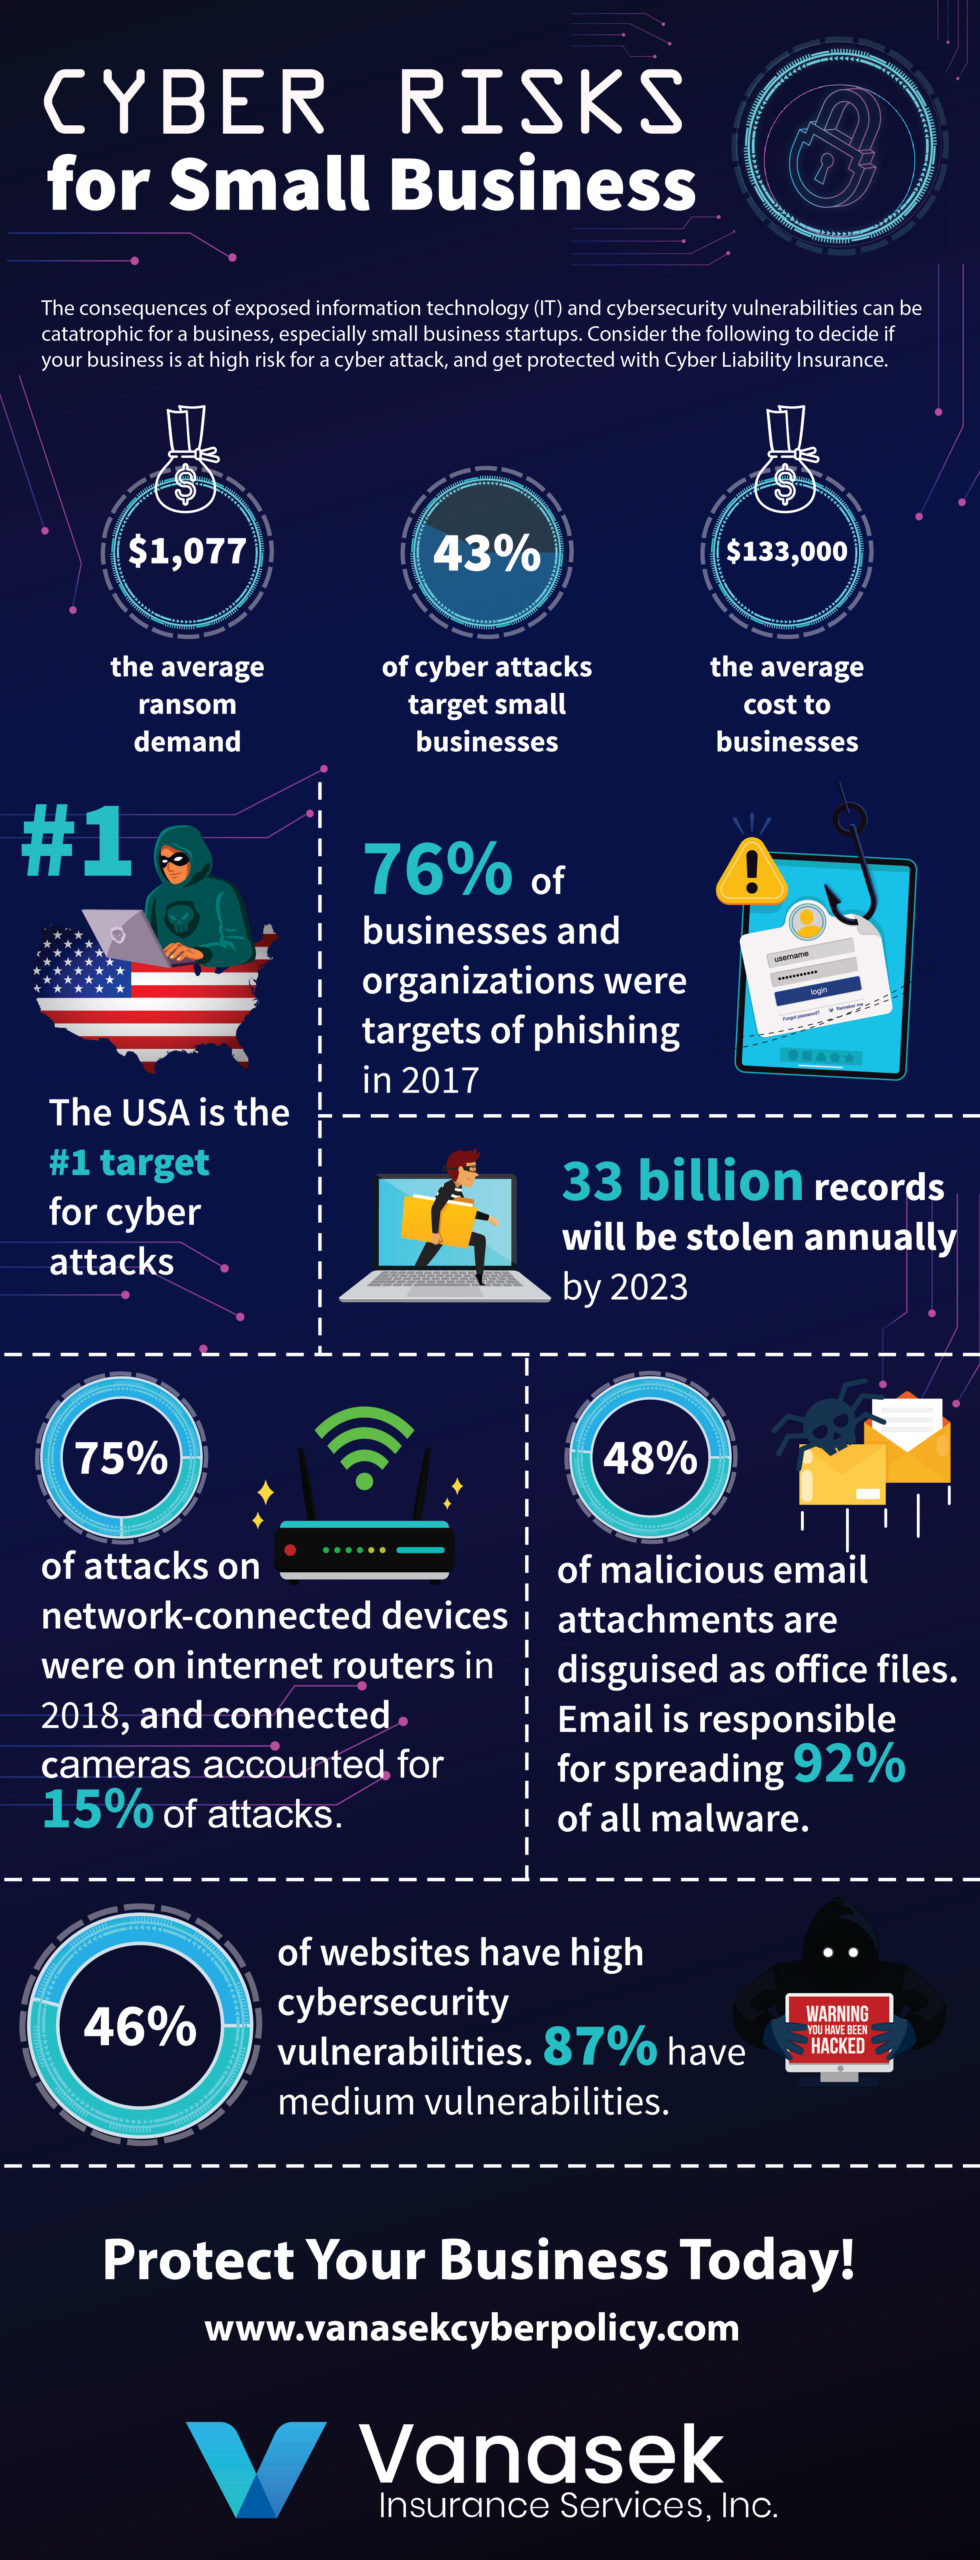 Cyber Security Risks for Small Business